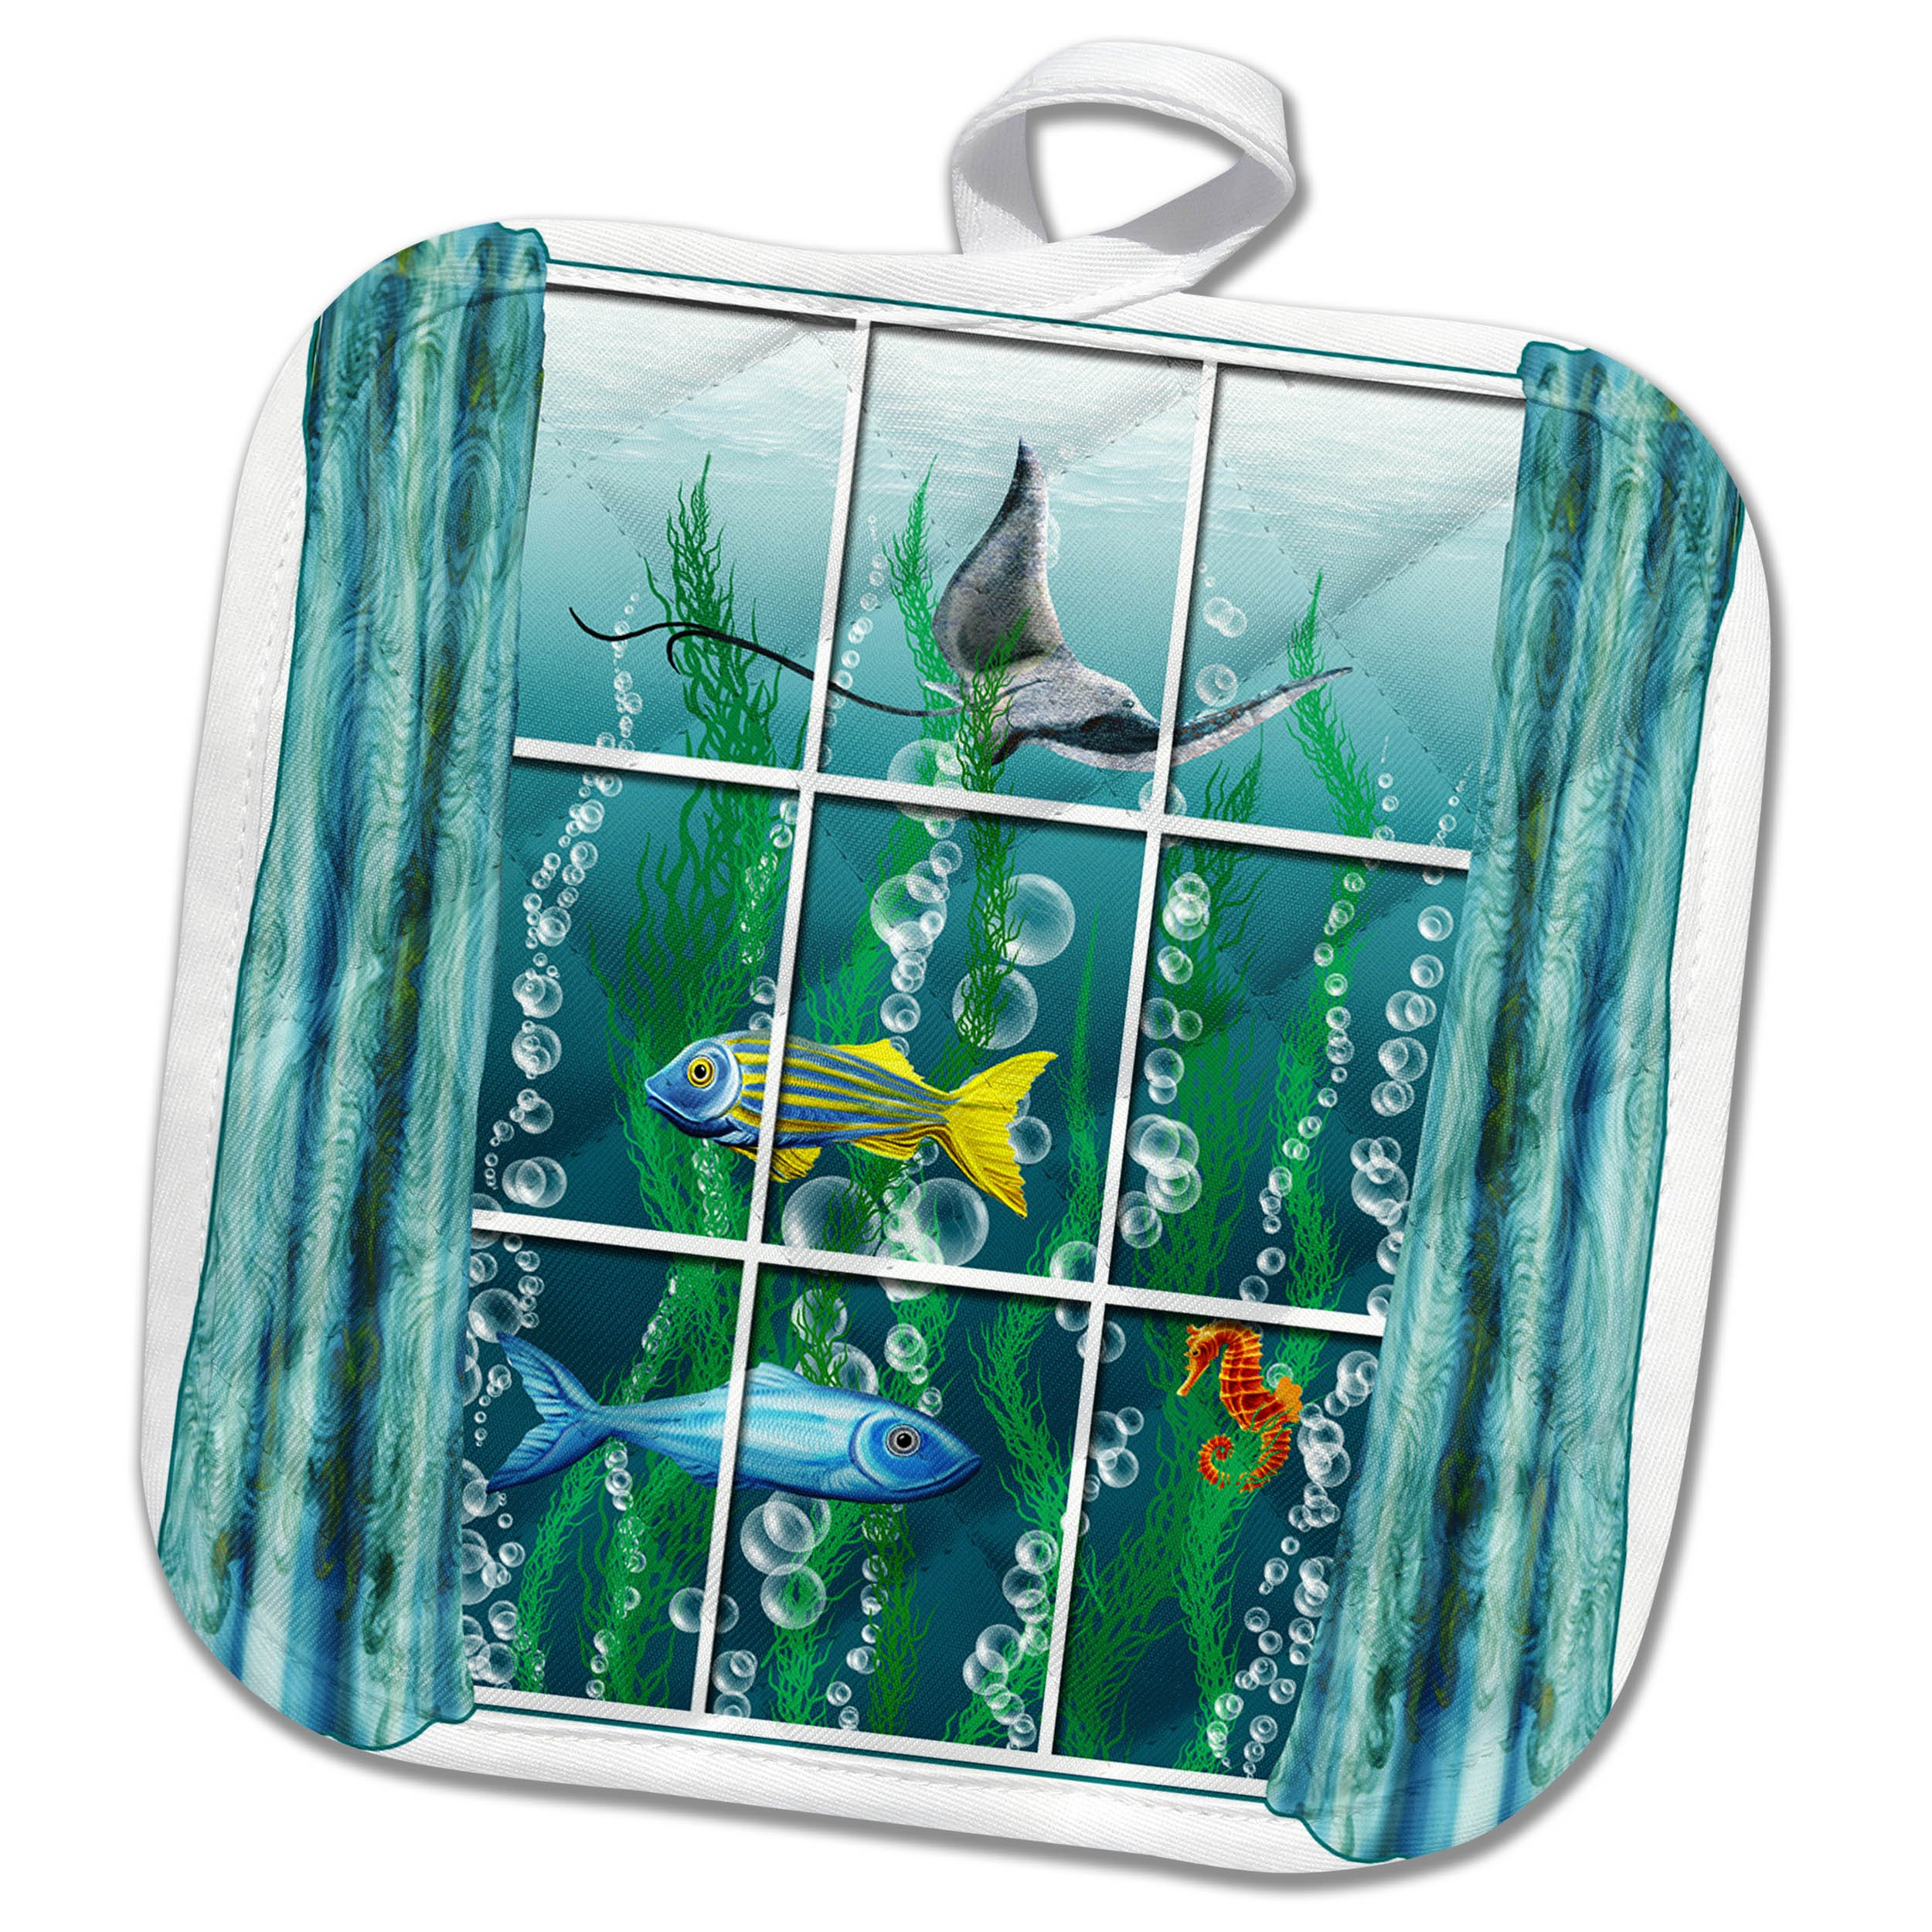 3dRose Dream Essence Designs-The Ocean - A surreal scene of a room with view to ocean life through the window. - 8x8 Potholder (phl_266098_1)